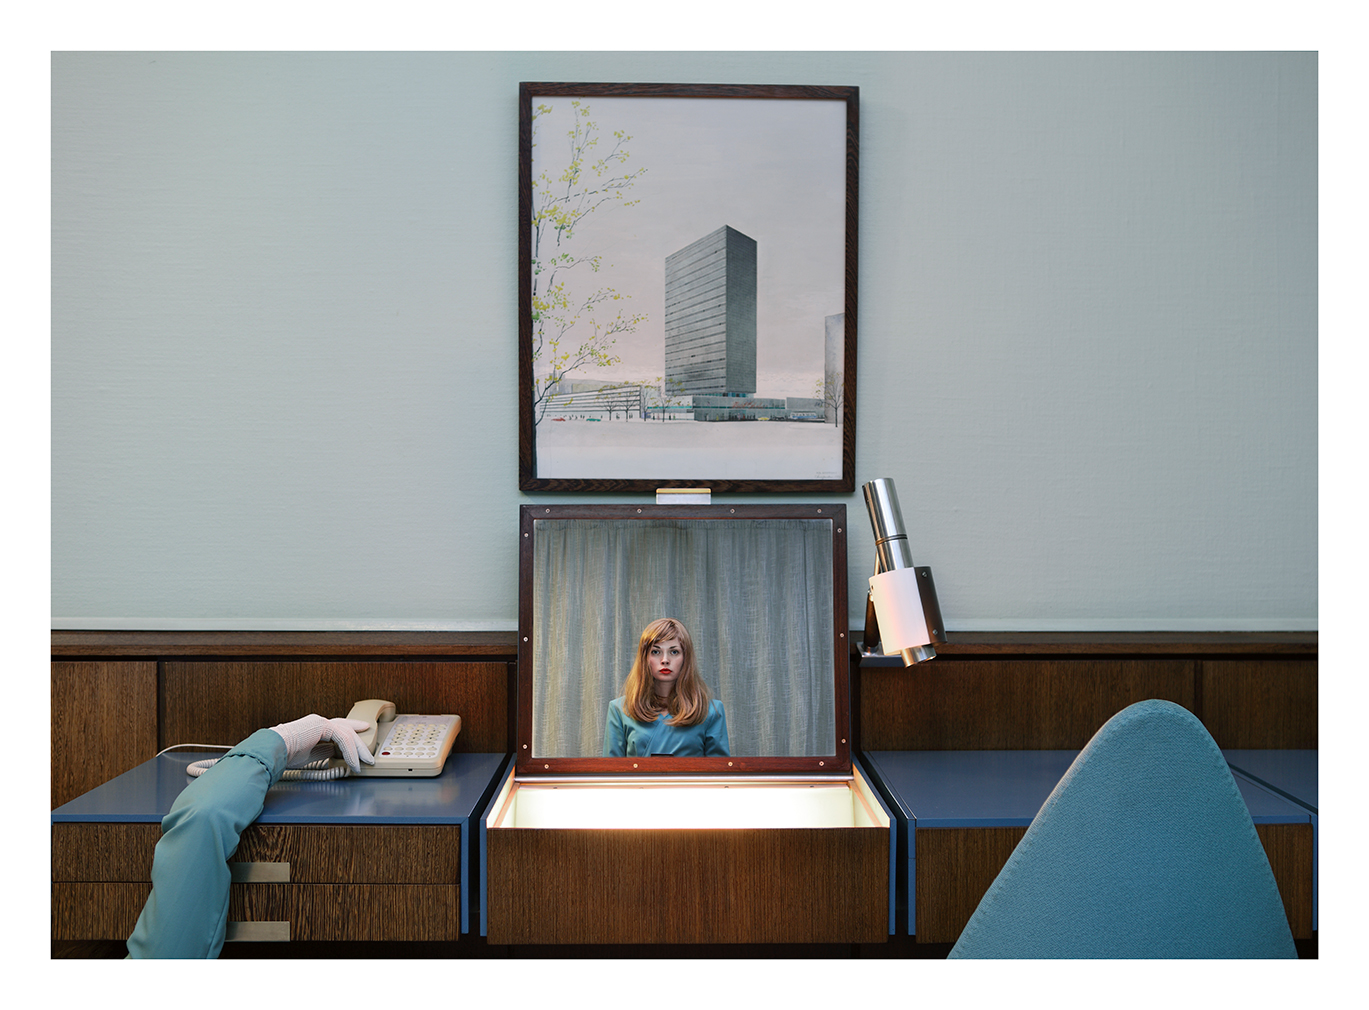 'The Receptionist'. 'The Starlet'. Photography: Anja Niemi (c) 2019